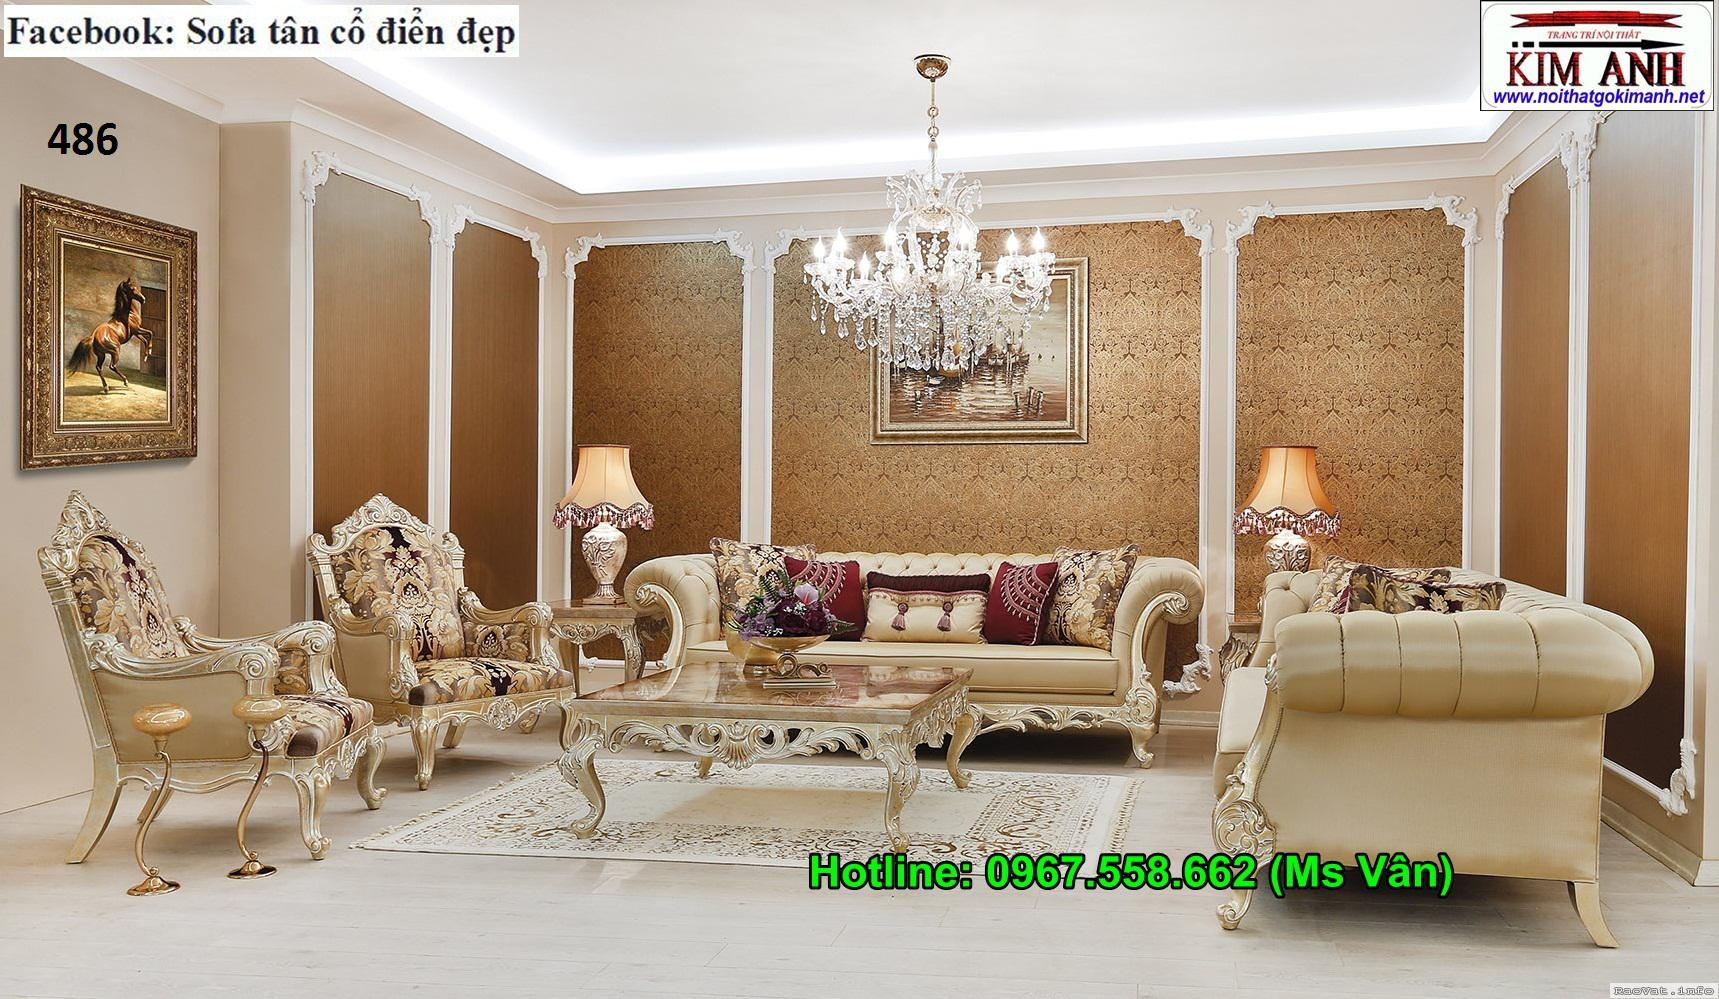 http://www.raovat.info/upload/2018-08-09/u130785-sofa-co-dien-486.jpg